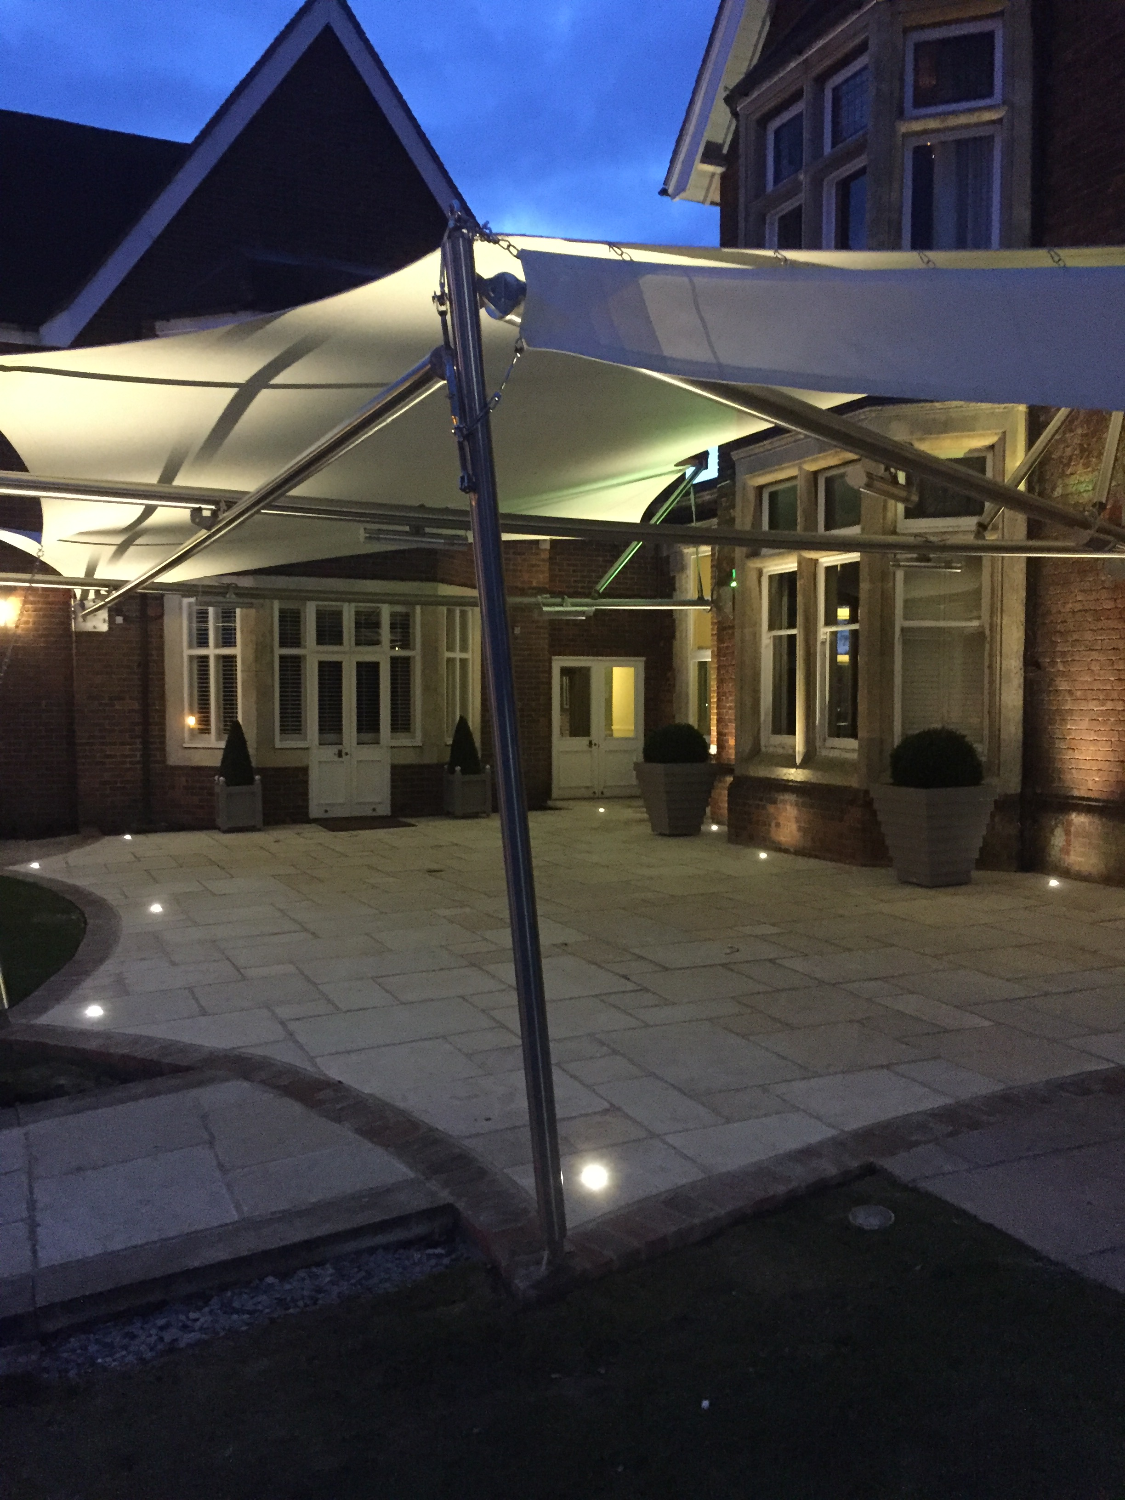 Pontlands Park Hotel Terrace Sail11